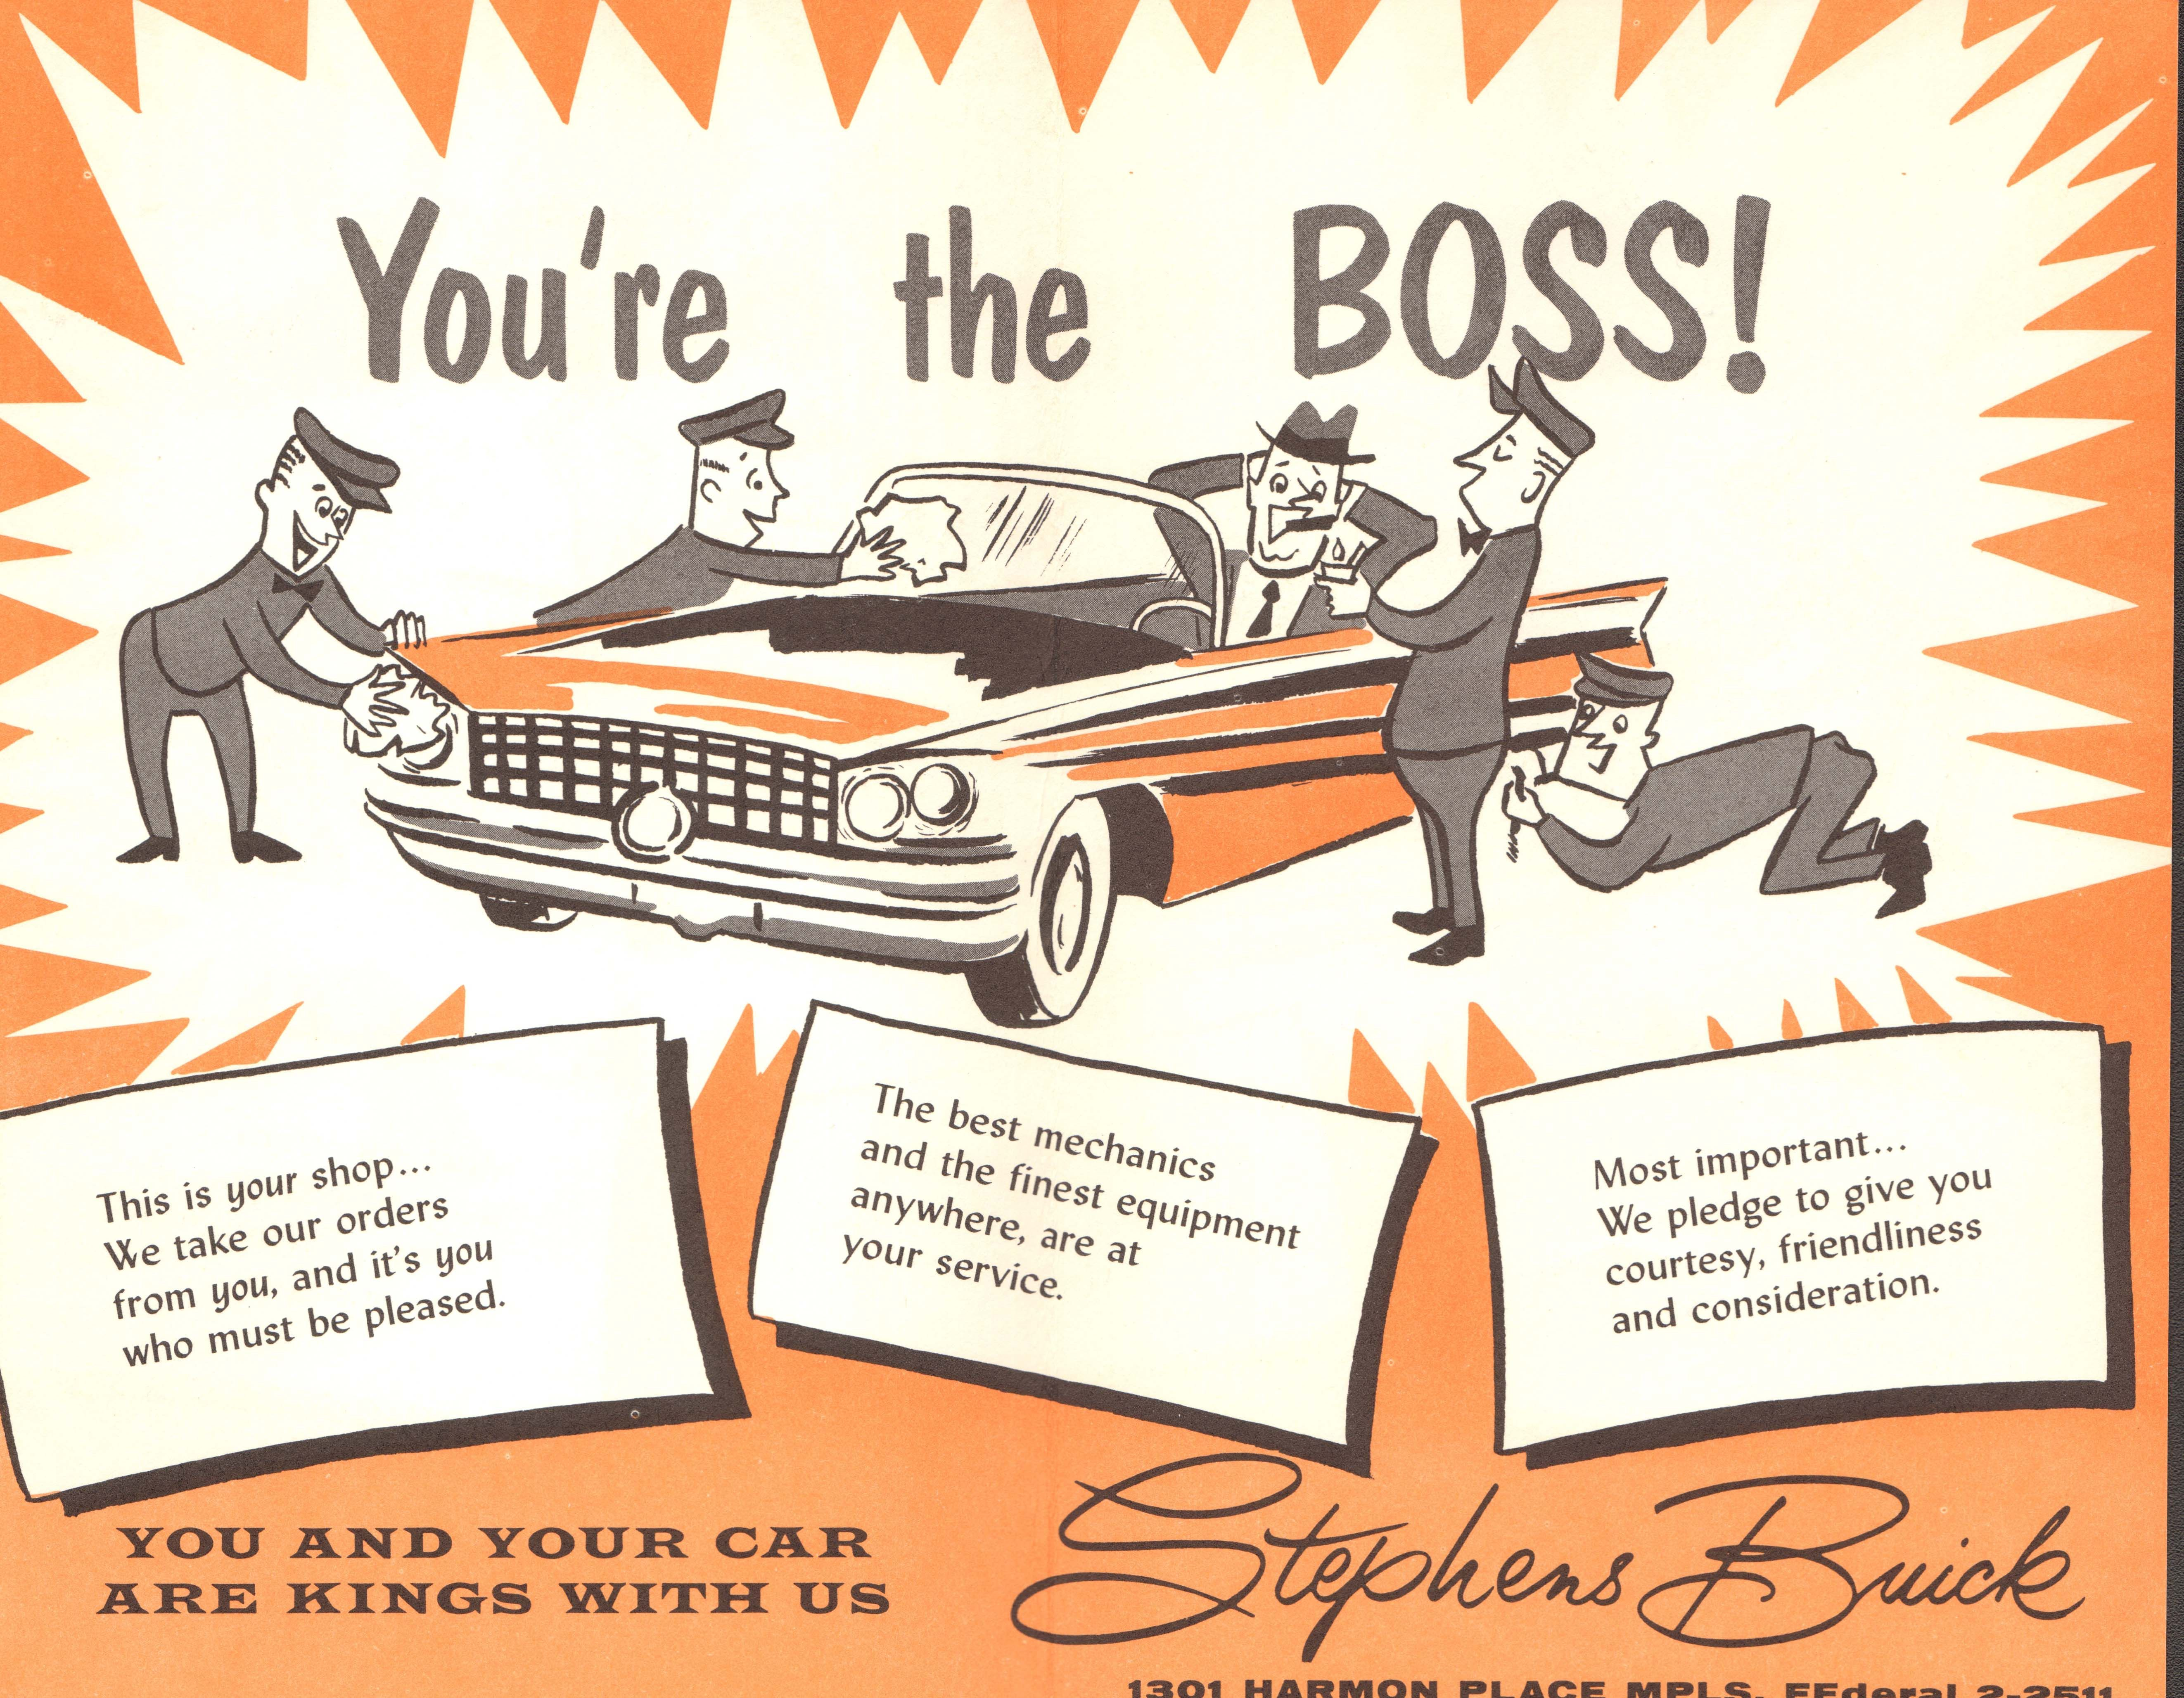 Win Stephens Buick was one of the biggest car dealers in town in the ...